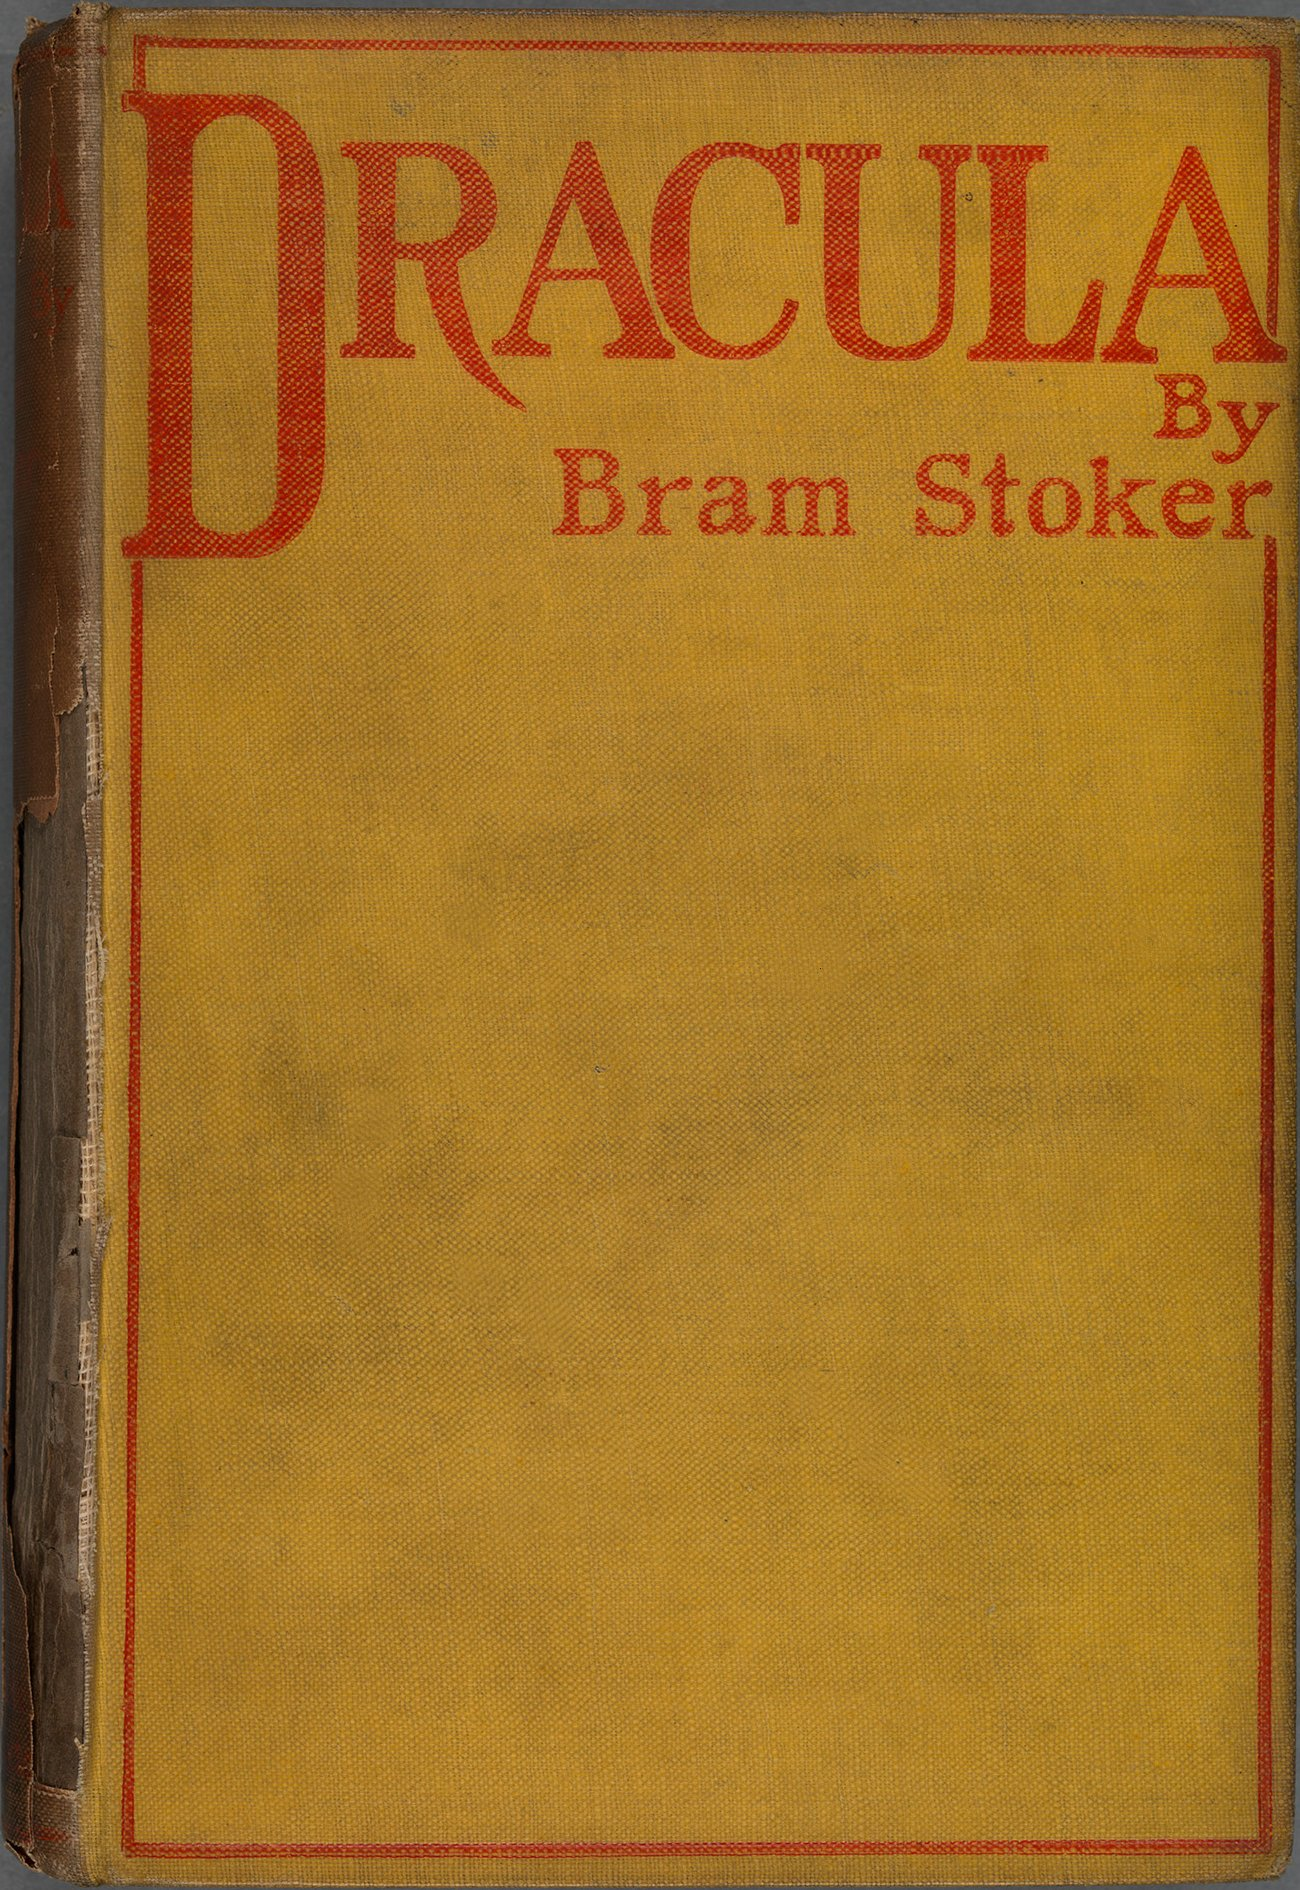 dracula bram stoker essay Essays on bram stoker dracula we have found dracula by bram stoker this is one of the novels that was this brief essay will seek to underscore and.